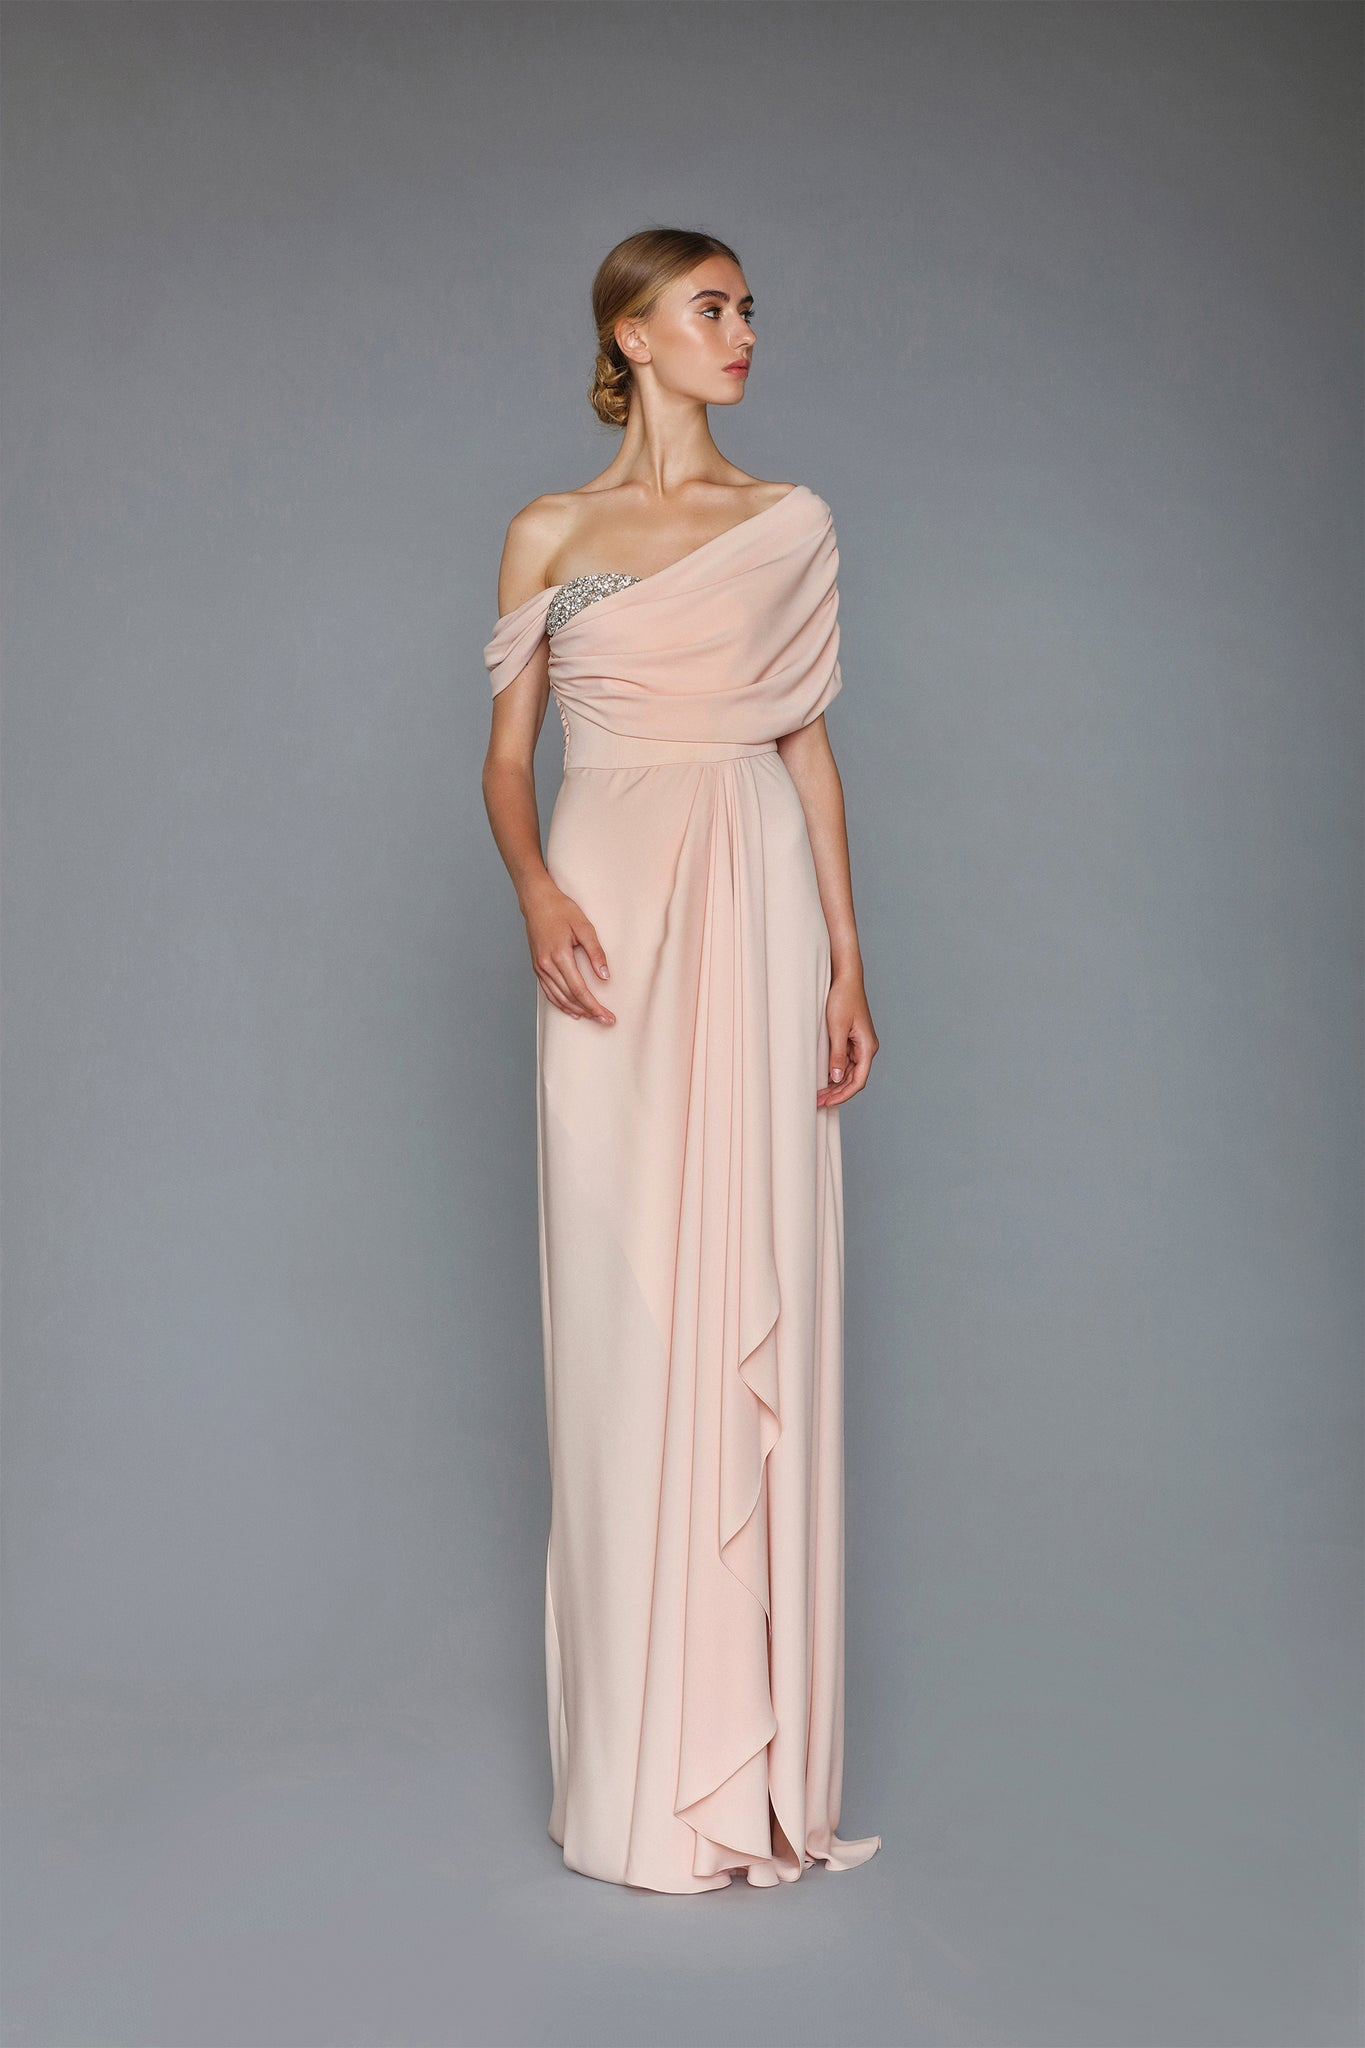 HANDMADE EMBROIDERED LIGHT SILKY CREPE LONG DRESS